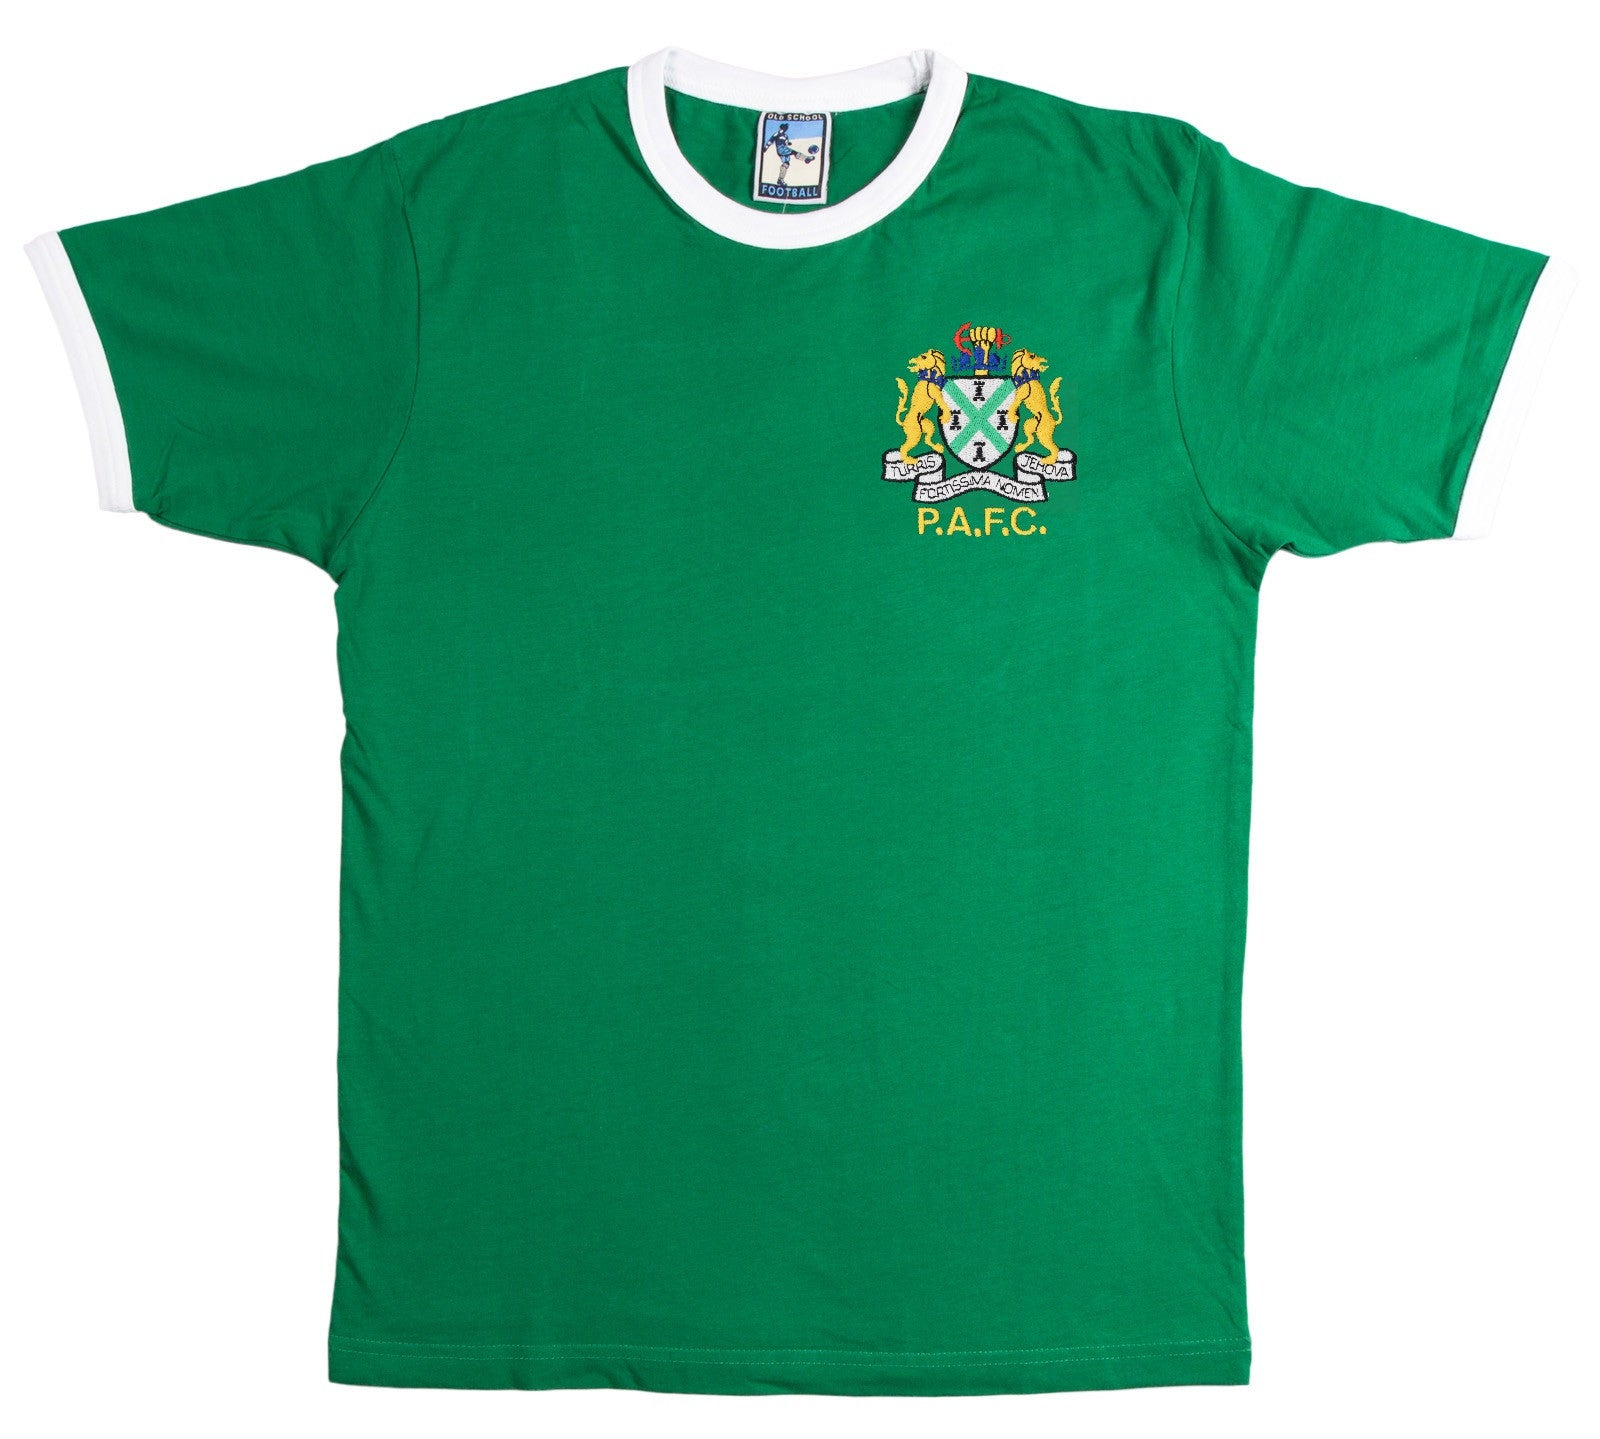 Plymouth Argyle Retro Football T Shirt 1950s - T-shirt